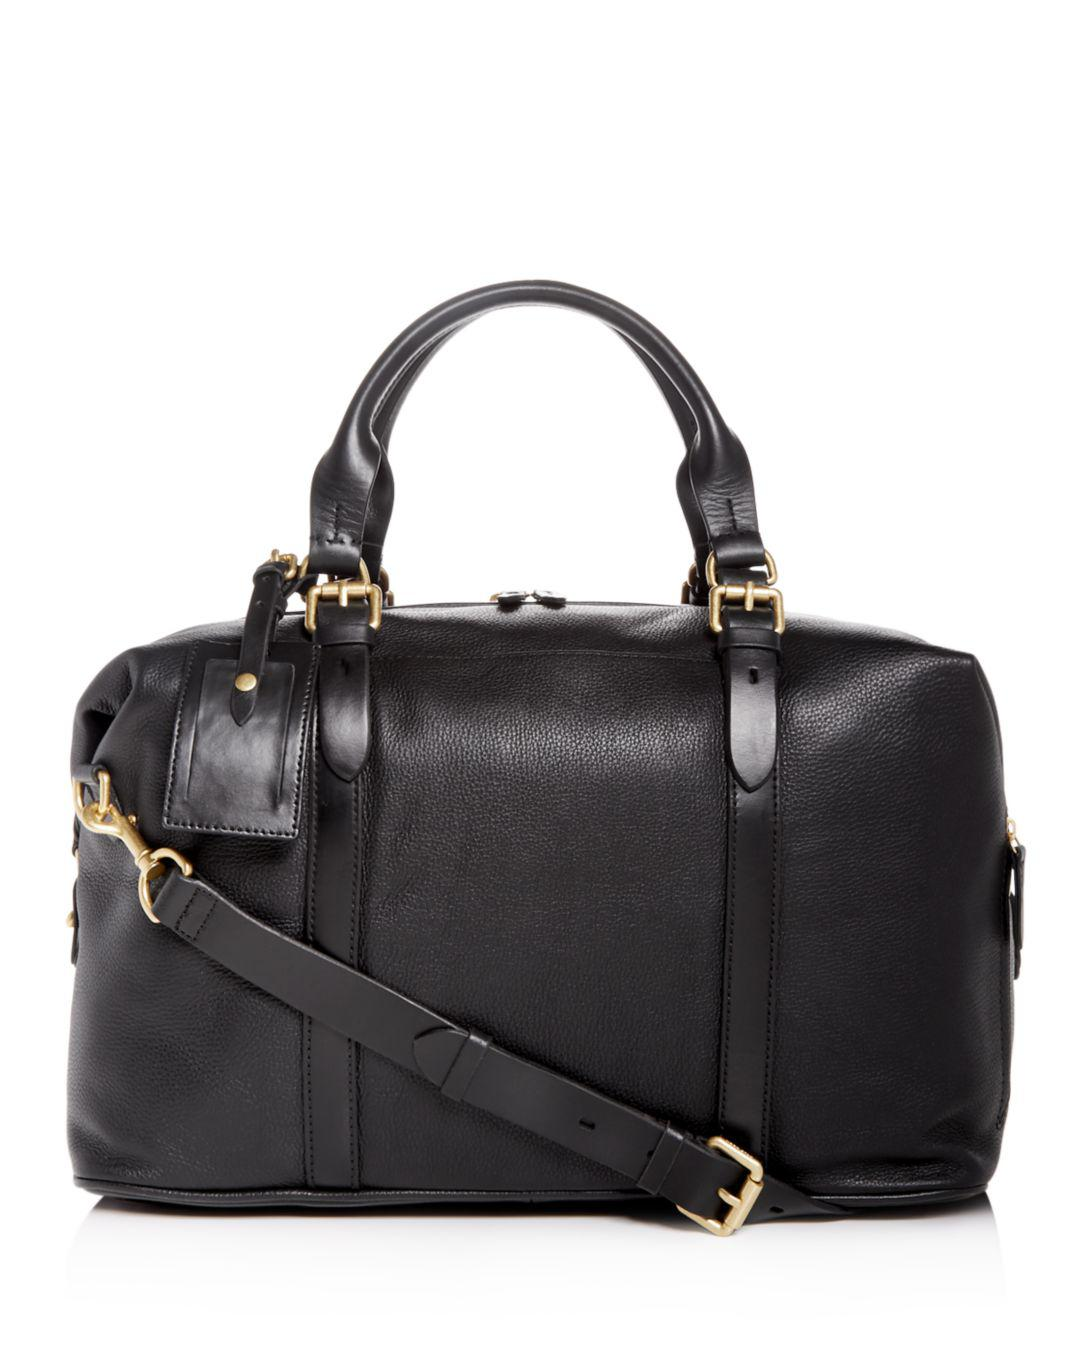 Lyst - Cole Haan Matthews Leather Duffle in Black for Men a7dd65f0abf5e